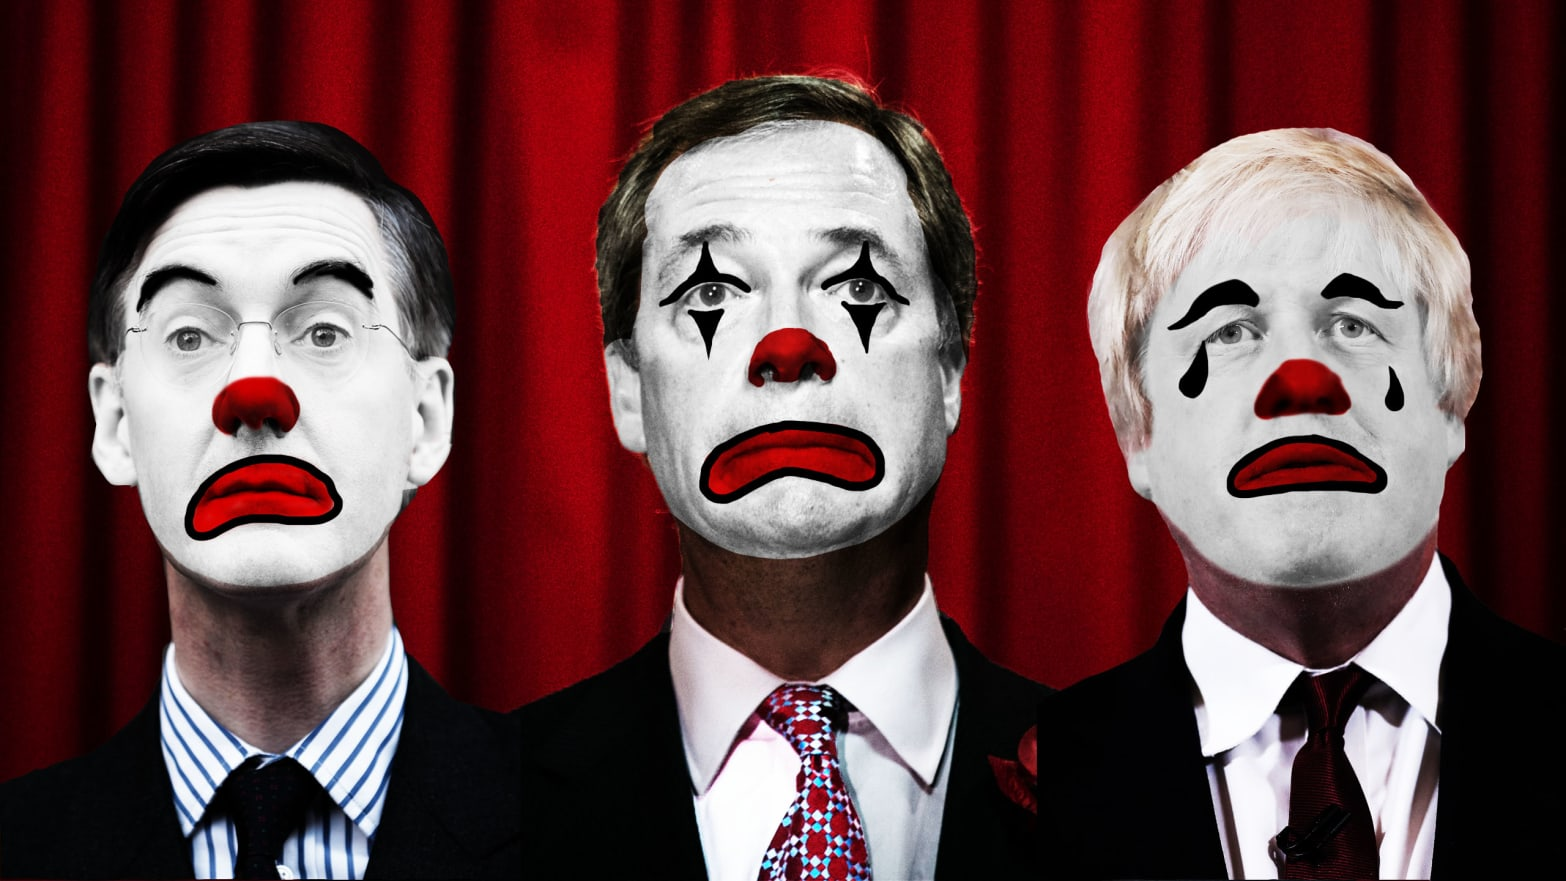 Nigel Farage, Boris Johnson, Jacob Rees-Mogg: The Three Clowns of ...